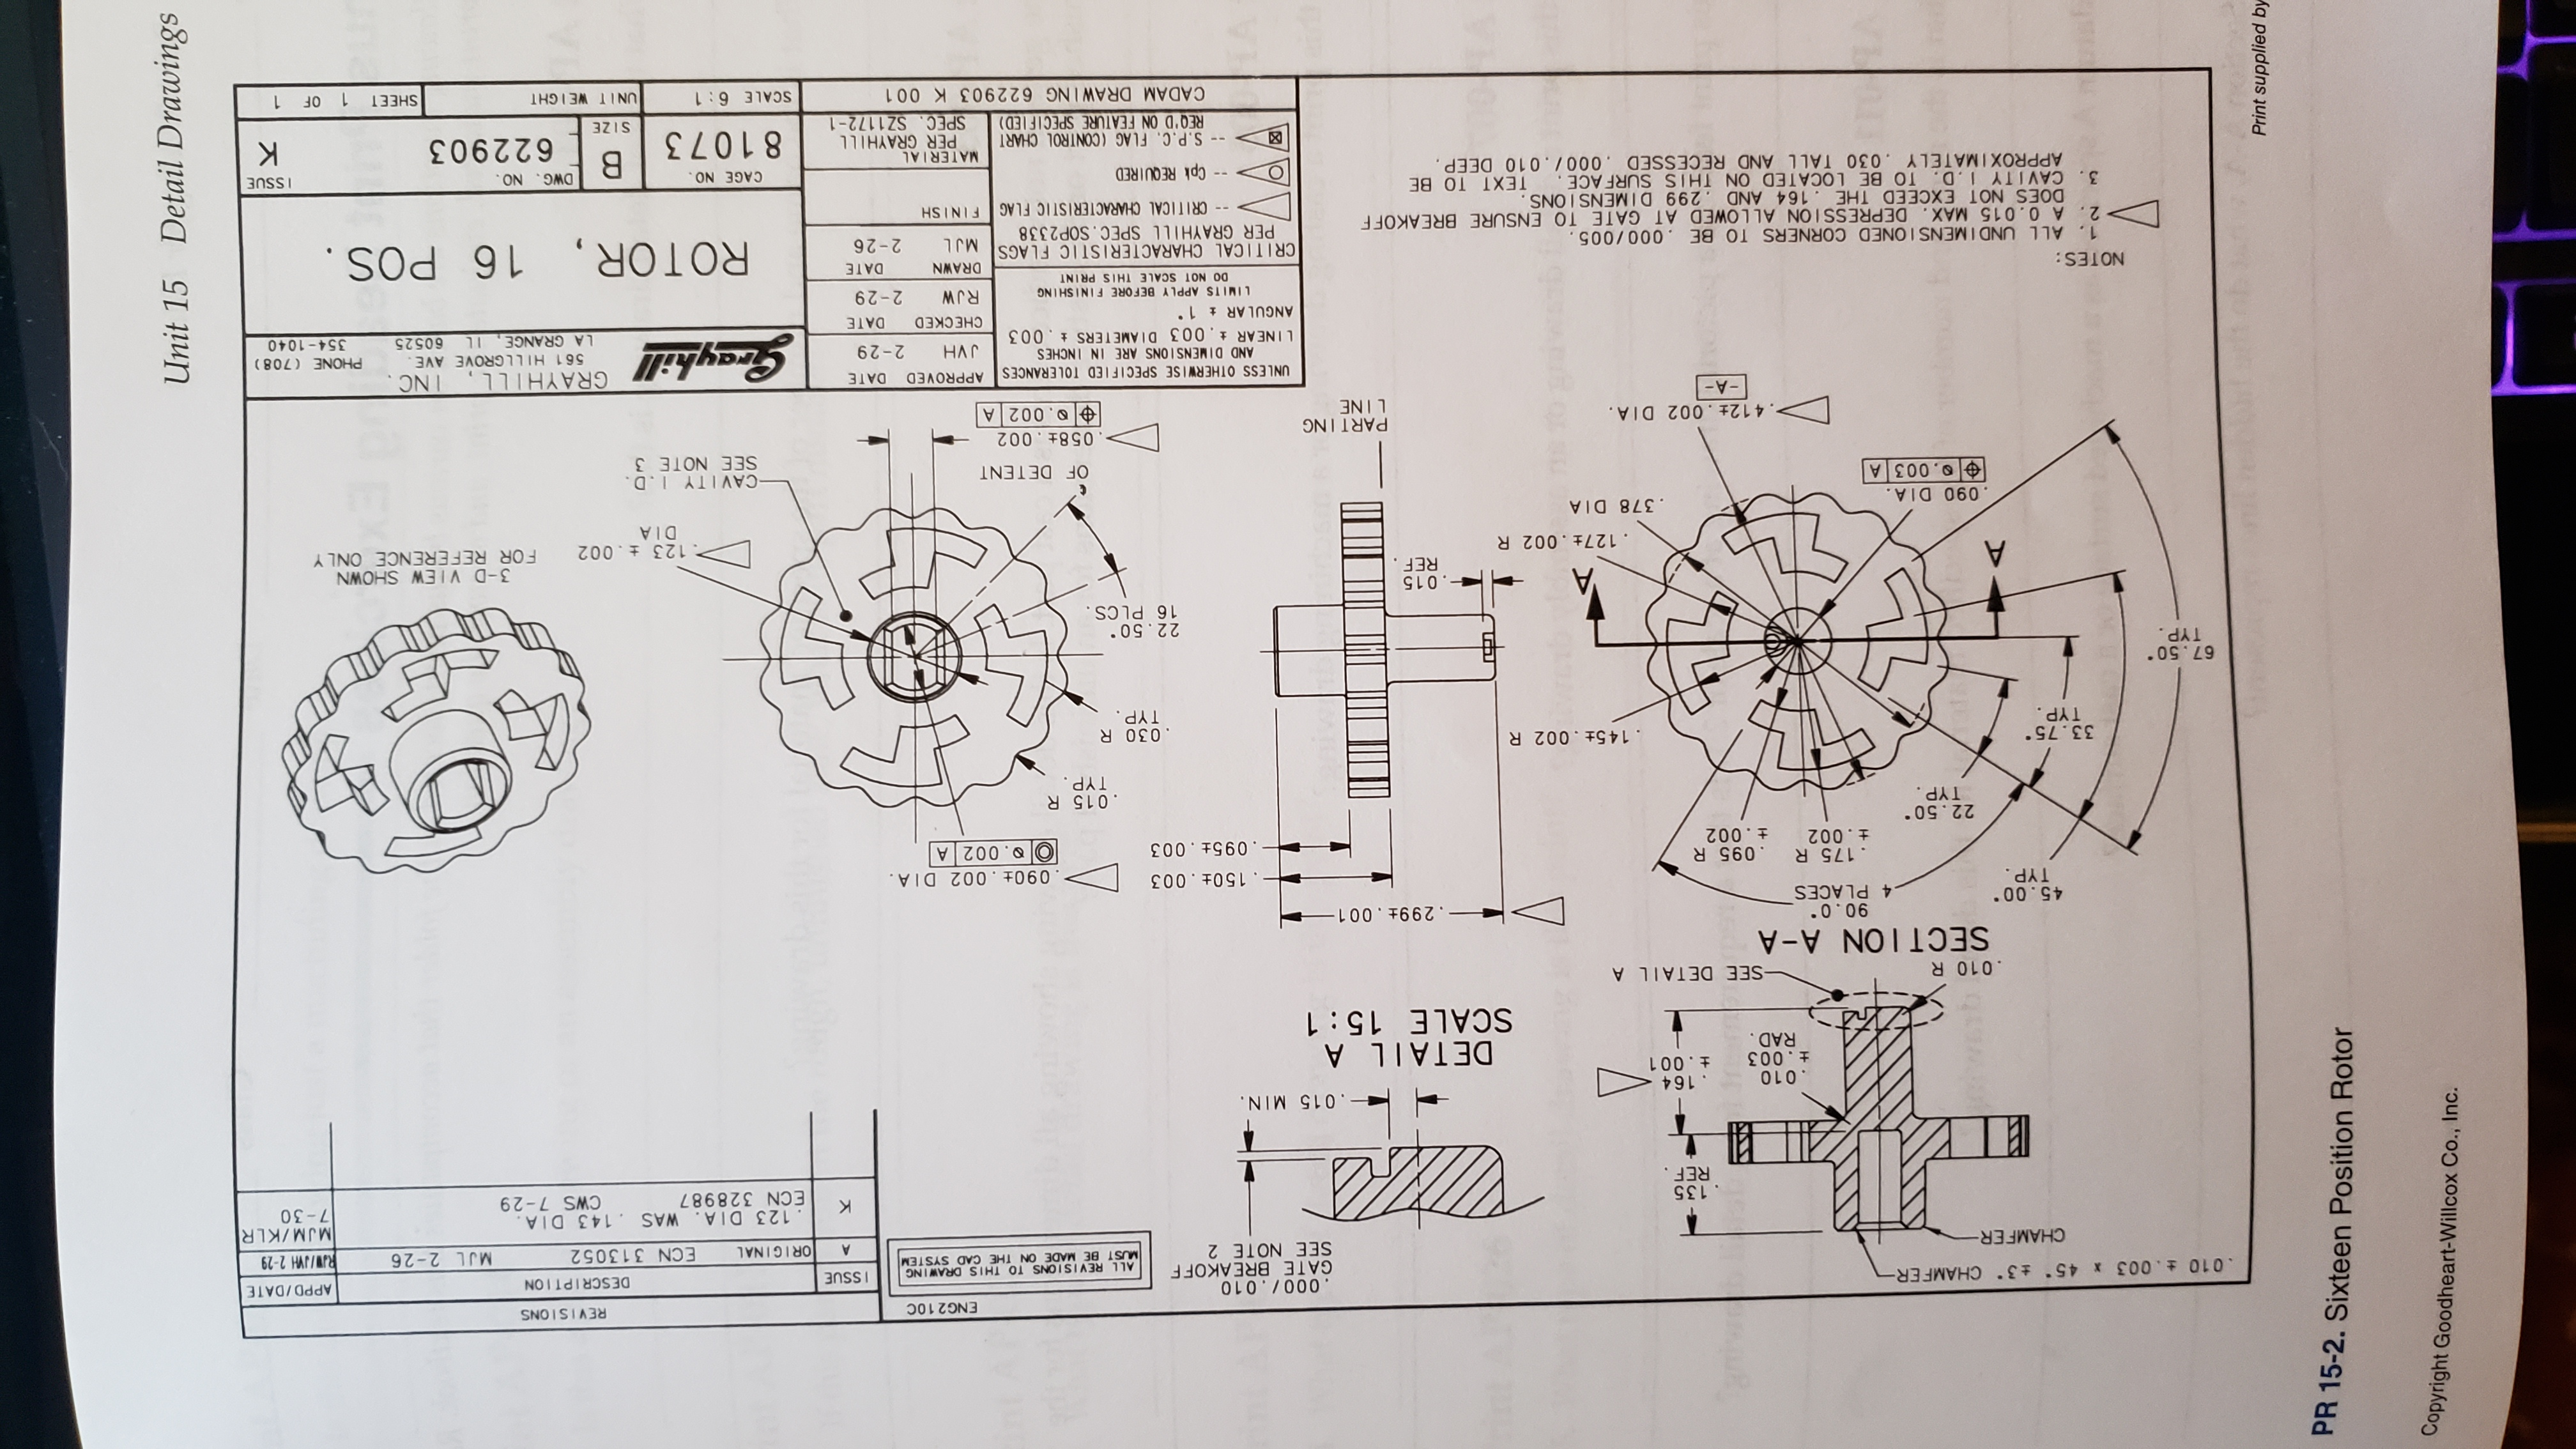 Detail Drawings Unit 15 E Print supplied by PR 15-2. Sixteen Position Rotor Copyright Goodheart-Willcox Co., Inc. ENG2 10C REVISIONS .000/ .010 GATE BREAKOFF SEE NOTE 2 .010 003 * 45 3 CHAMF ER- SSUE DESCRIPTION APPD/DATE ALL REVISI ONS TO THIS DRAWING MUST BE MADE ON THE CAD SYSTEM RW/JVH 2-29 MJM/KLR 7-30 CHAMFER- A OR IGINAL ECN 313052 MJL 2-26 .135 REF. .123 DIA. WAS 143 DIA ECN 328987 CWS 7-29 -. 015 MIN. .164 .010 t .003 +.001 RAD. DETAIL A SCALE 15 1 .010 R -SEE DETAILA SECTION A-A .00 40 TYP. 90.0 .4 PLACES .150+.003 .175 R .095 R t.002 090 002 DIA .002 A + .002 .095t .003 22.50 TYP .015 R TYP. 33.75 TYP. .145+ .002 R .030 R TYP. 67.50 TYP. 22.50 16 PLCS. -. 015 REF A 3-D VIEW SHOWN FOR REFERENCE ONLY .127t .002 R 123 .002 DIA .378 DIA .090 DIA .003 A -CAV I TY 1.D. SEE NOTE 3 OF DETENT PART ING LINE .058+ . 002 .002 A . 412t . 002 DIA. -A- GRAYHILL, INC APPROVED DATE UNLESS OTHERWISE SPECIFIED TOLERANCES AND DIMENSIONS ARE IN INCHES LINEAR 003 DIAMETERS .003 ANGULAR 1 561 HILLGROVE AVE PHONE (708) HAT CHECKED 2-29 LA GRANGE, 11 60525 354-1040 DATE LIMITS APPLY BEFORE FINISHING RJW 2-29 NOTES: DO NOT SCALE THIS PRINT 910 ROTOR, 16 POS. DRAWN DATE CRITICAL CHARACTERISTIC FLAGS PER GRAYHILL SPEC.SOP2338 1. ALL UNDIMENS I ONED CORNERS TO BE .000 /005. 2. A 0.015 MAX. DEPRESSI ON ALLOWED AT GATE TO ENSURE BREAKOFF DOES NOT EXCEED THE .164 AND .299 DIMENSIONS. 3. CAVITY I.D. TO BE LOCATED ON THIS SURFACE. TEXT TO BE APPROXIMATELY .030 TALL AND RECESSED .000/.010 DEEP MJL 2-26 CRITICAL CHARACTERISTIC FLAG FINISH -- Cpk REQUIRED CAGE NO DWG ISSUE ON MATERIAL PER GRAYHILL SPEC. SZ1172-1 81073 -- S.P.C. FLAG (CONTROL CHART 622903 X REQ'D ON FEATURE SPECIFIED) 3ZIS CADAM DRAWING 622903 K 001 SCALE 6:1 SHEET 1 OF 1 UNIT WEIGHT